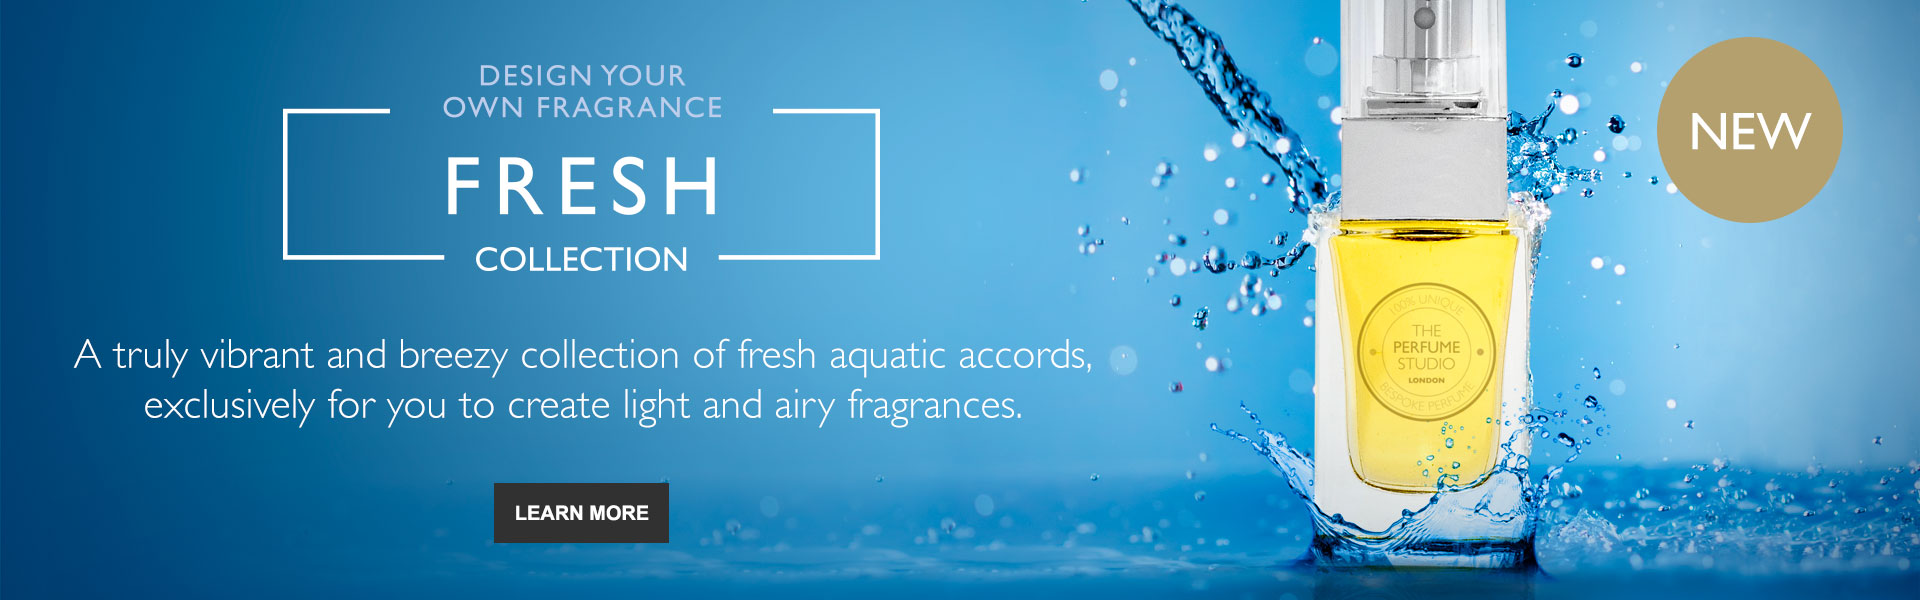 Design Your Own Fragrance - The Fresh Collection. A truly vibrant and breezy collection of fresh aquatic accords that lets you create light and airy fragrances.